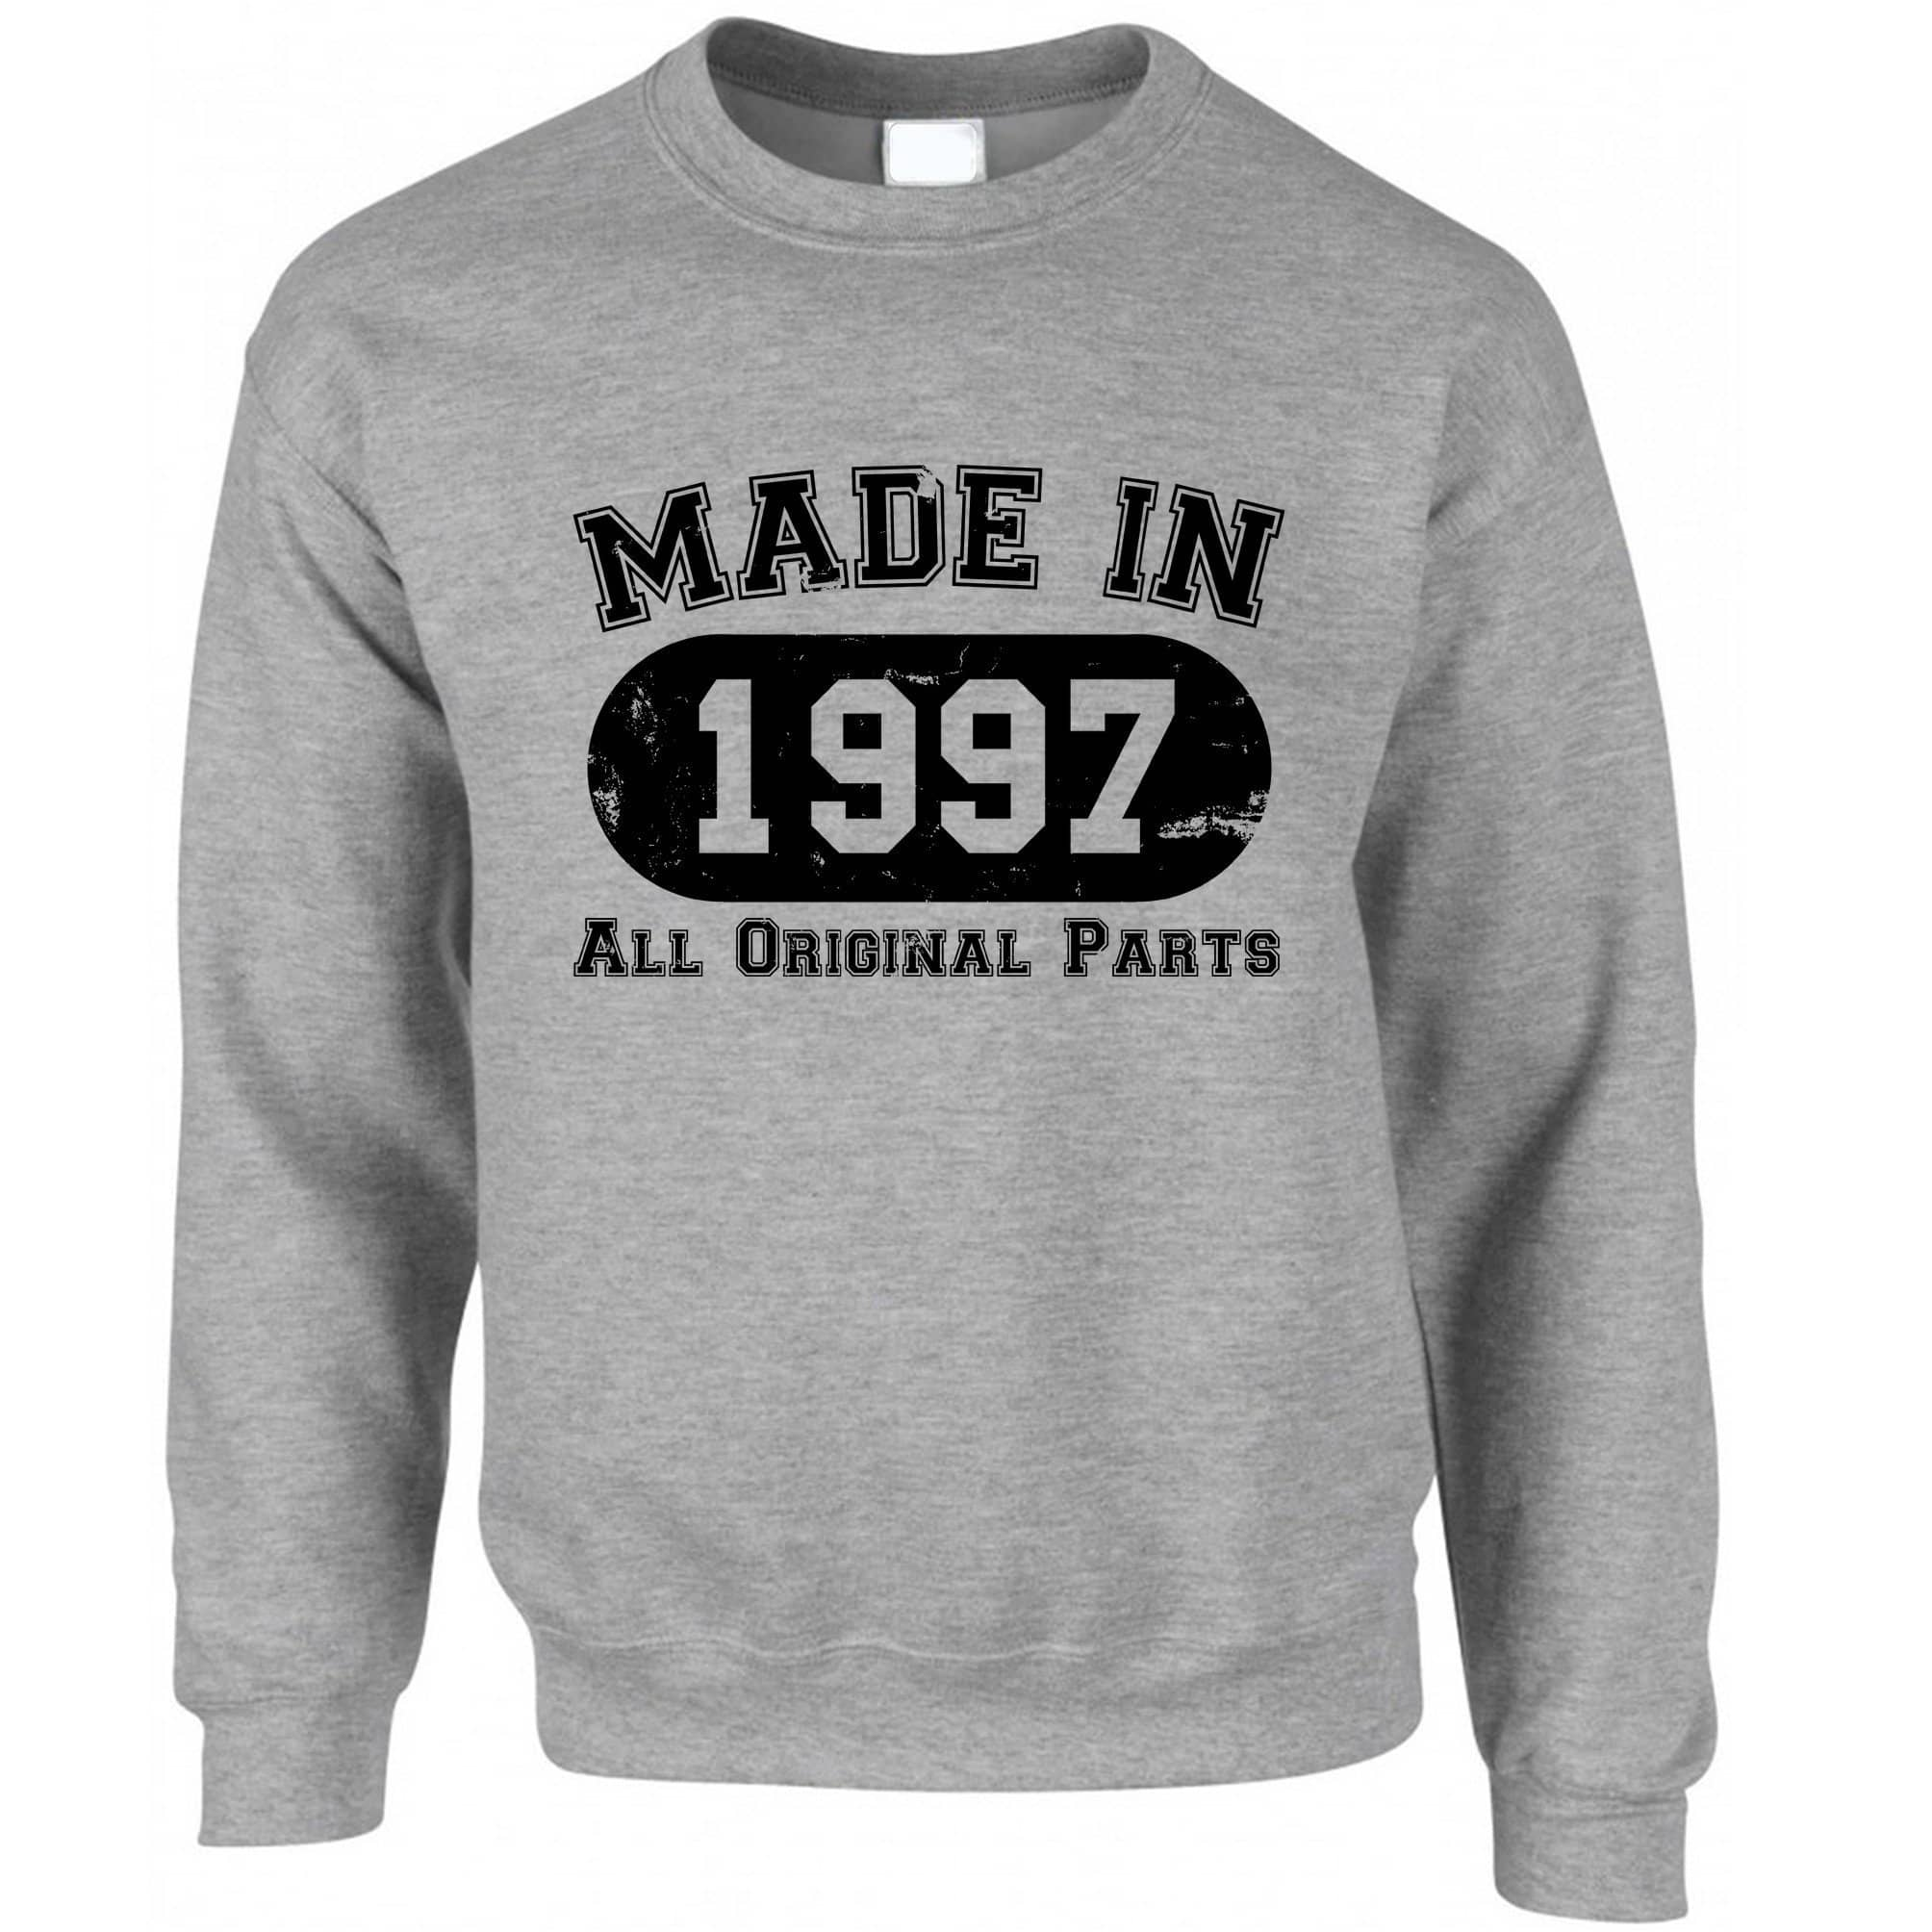 Made in 1997 All Original Parts Sweatshirt Jumper [Distressed]